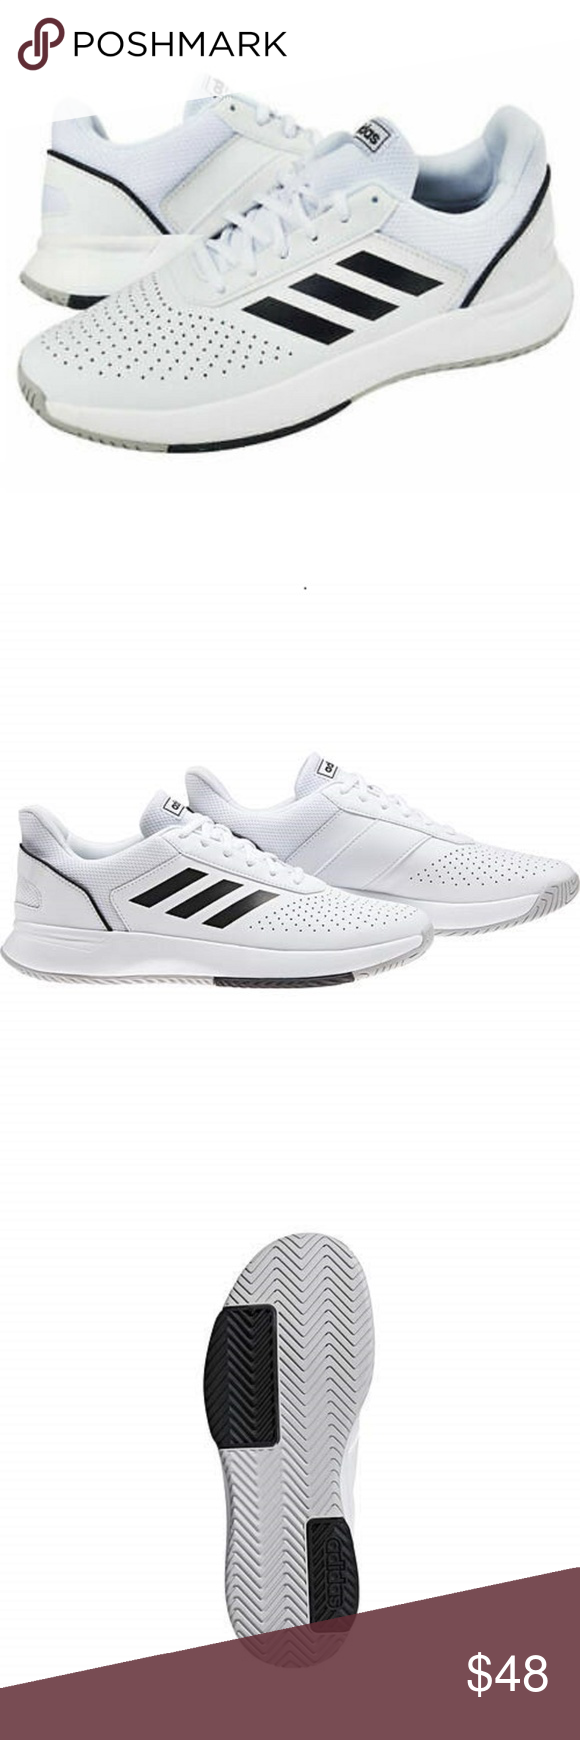 Adidas Men S Courtsmash Sneakers Tennis Shoes Boutique Tennis Shoes Sneakers Adidas Men Sneakers